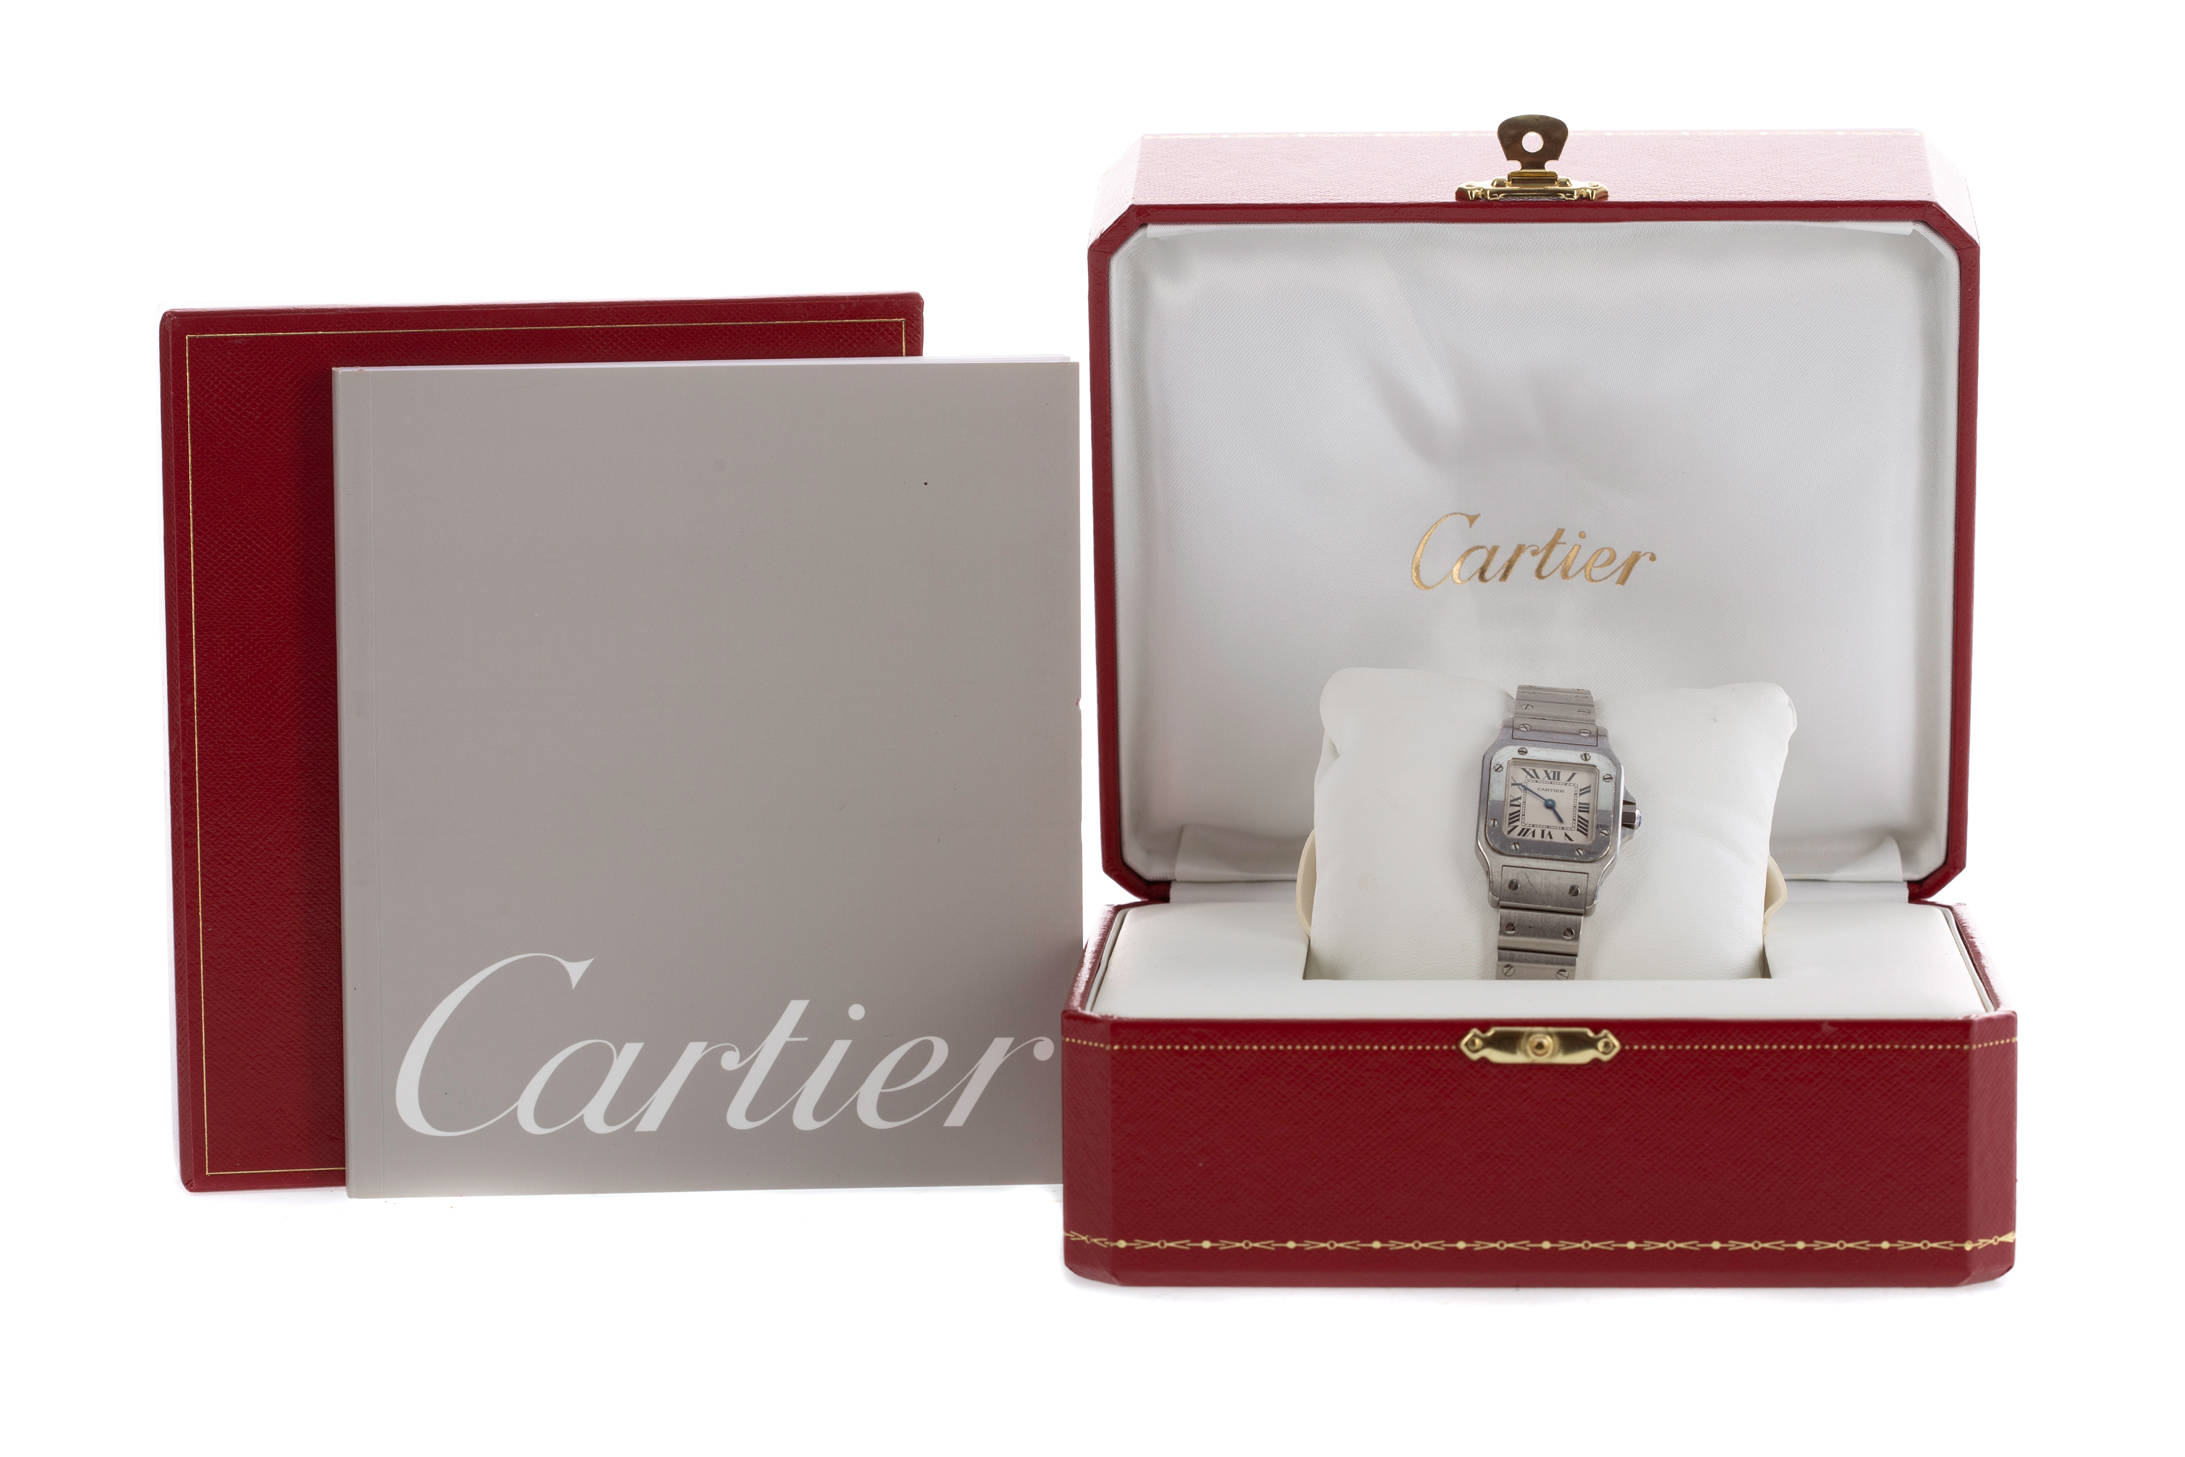 CARTIER SANTOS STAINLESS STEEL QUARTZ WRIST WATCH, the square white dial with Roman hour markers, - Image 2 of 3